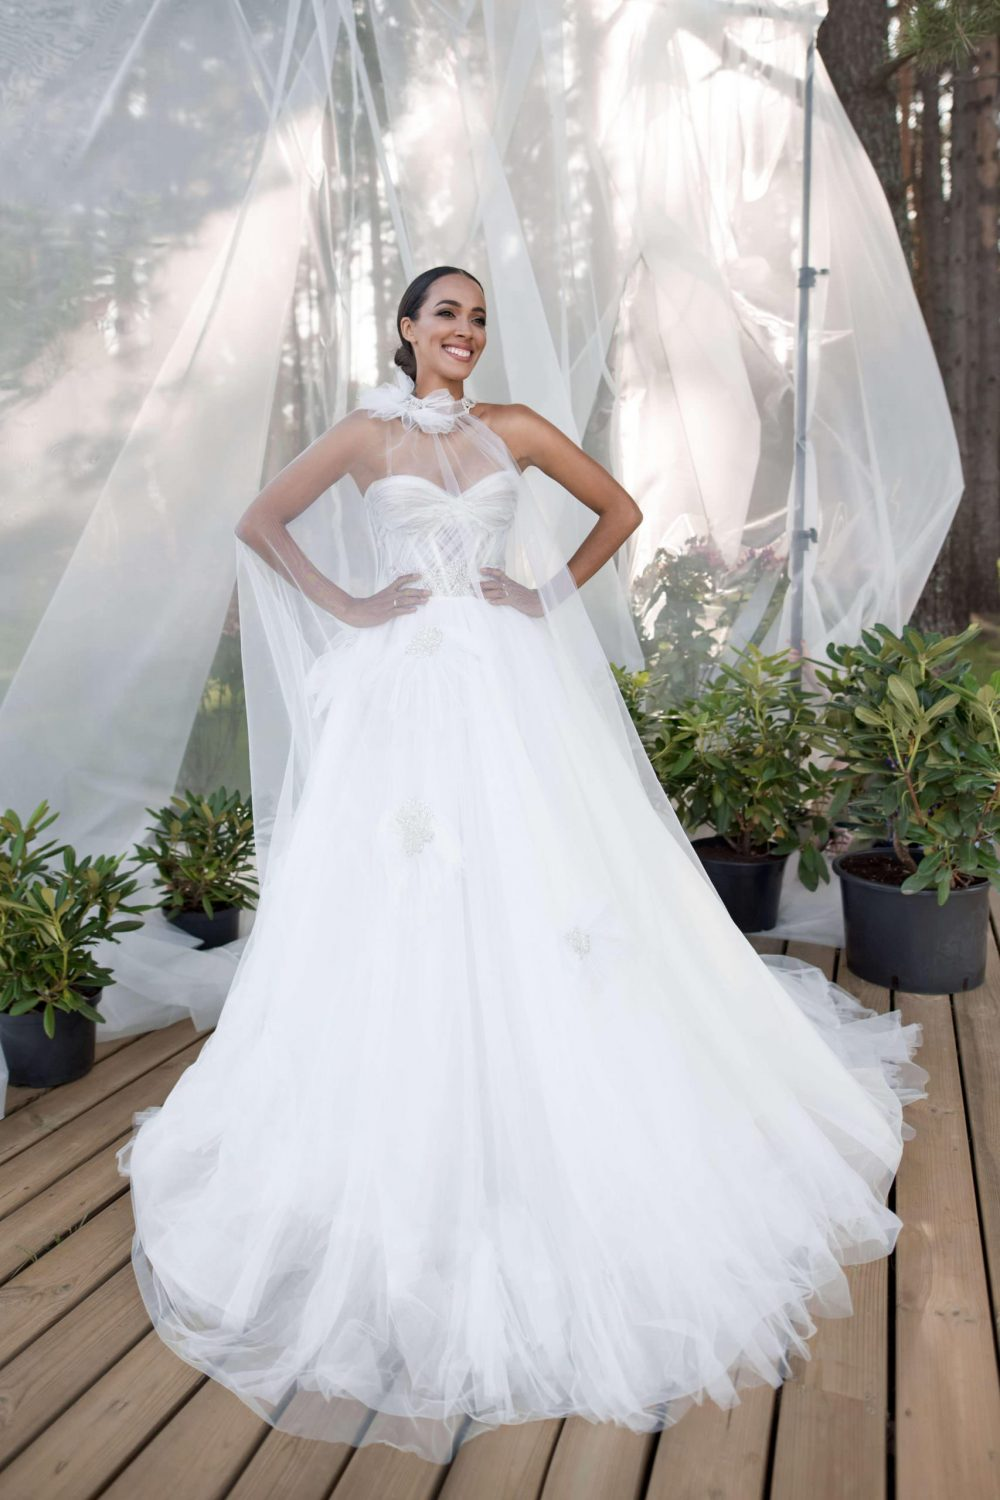 Wedding gown Blammo-Biamo Ramili